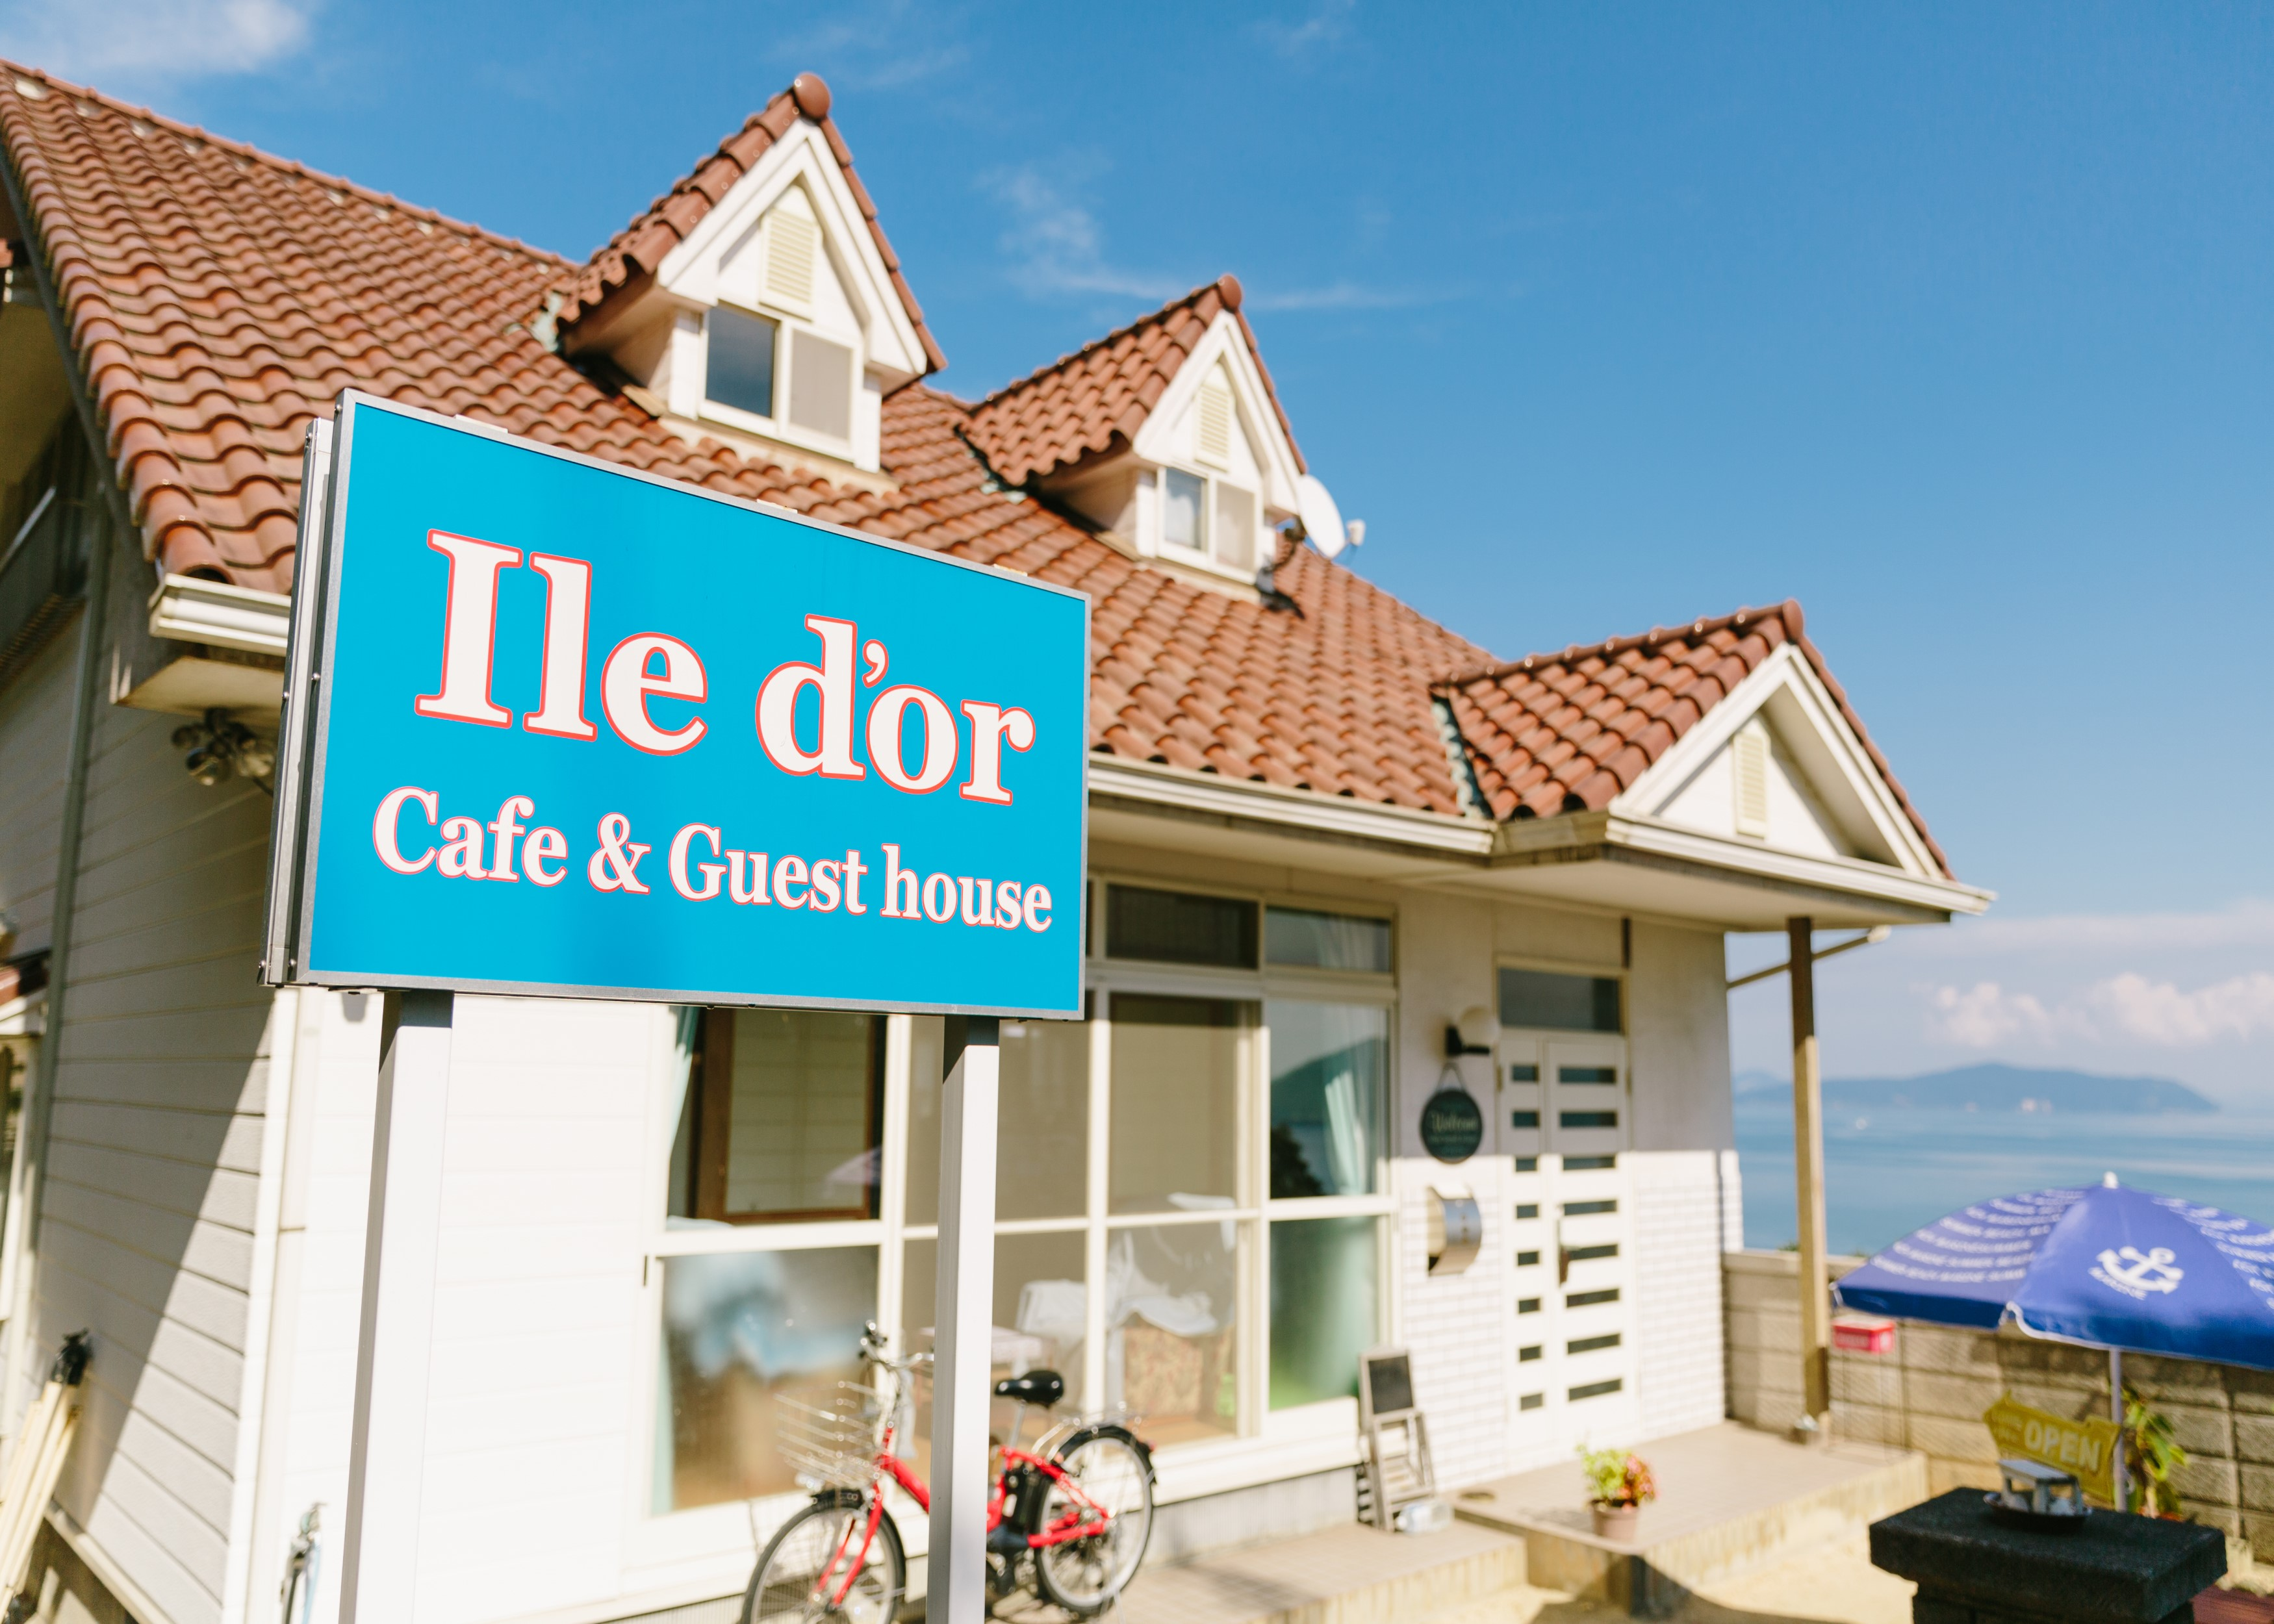 Ile d'or cafe&guesthouse <大飛島>